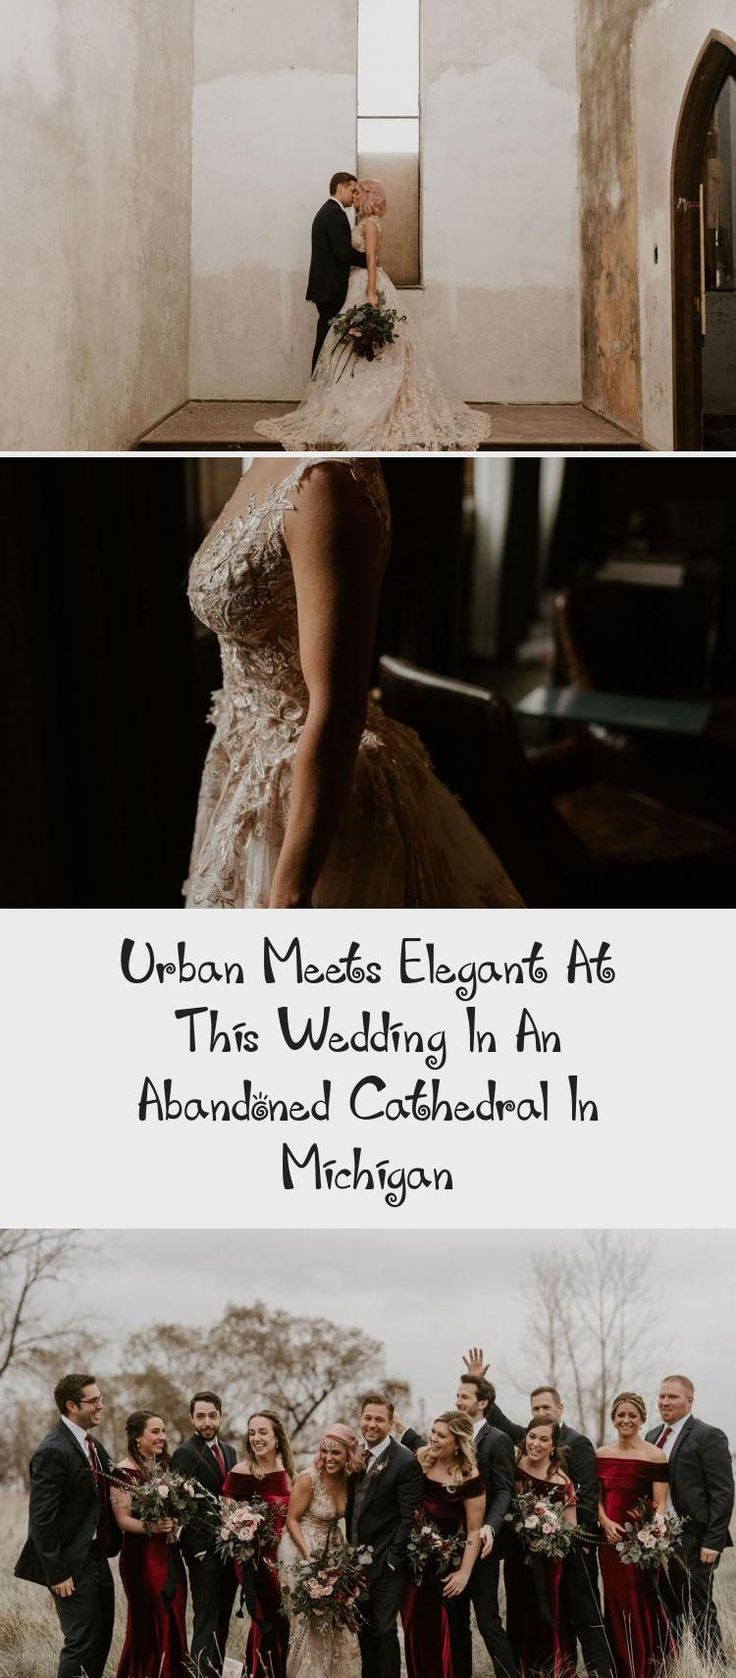 Urban Meets Elegant at this Wedding in an Abandoned Cathedral in Michigan - Green Wedding Shoes #BridesmaidDressesBlue #BridesmaidDressesWithSleeves #CasualBridesmaidDresses #AfricanBridesmaidDresses #BridesmaidDressesStyles